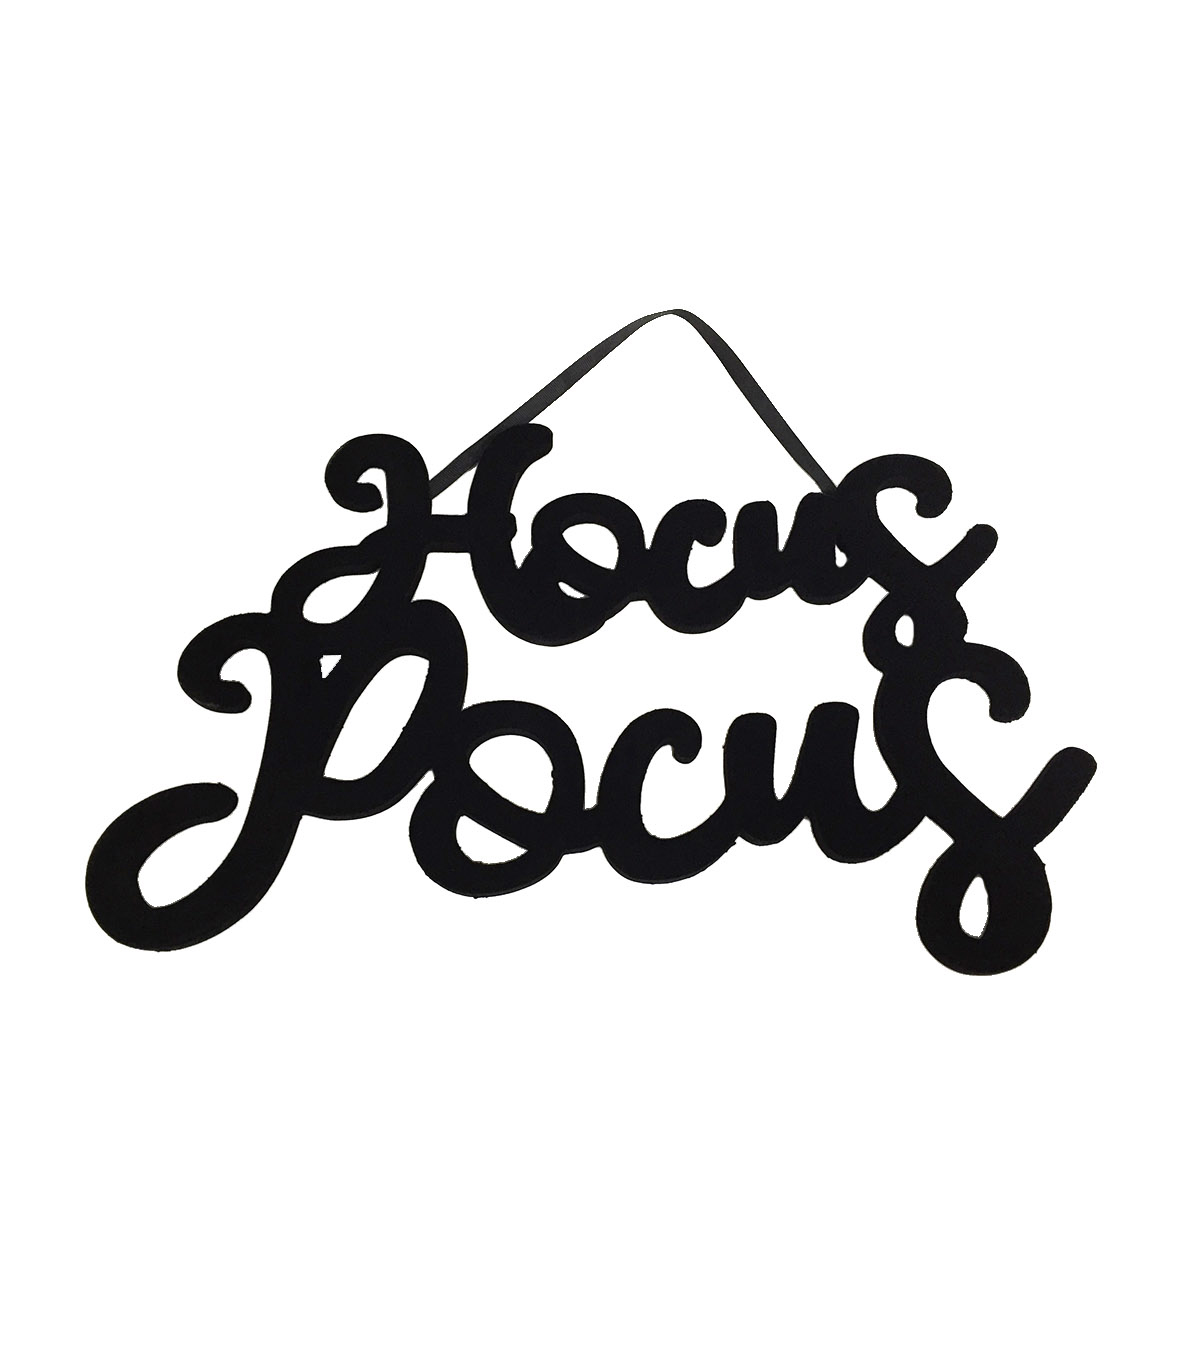 Maker\u0027s Halloween Hocus Pocus Wall Decor